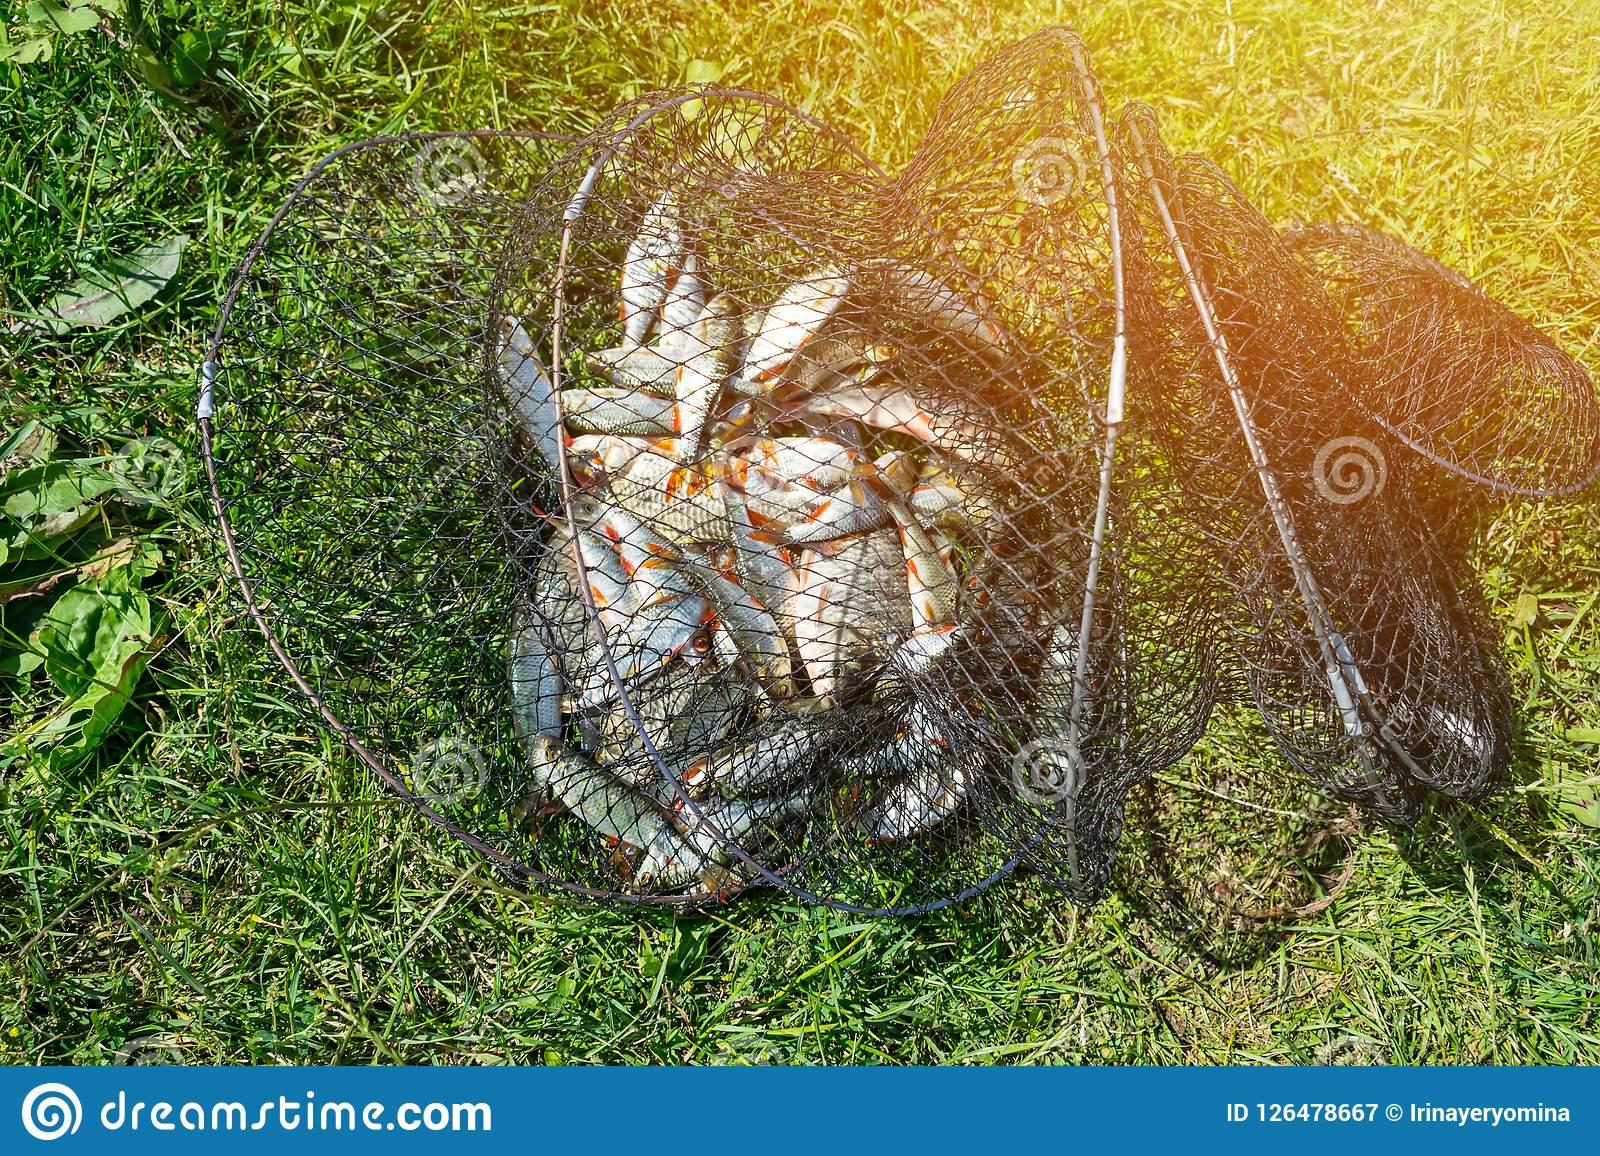 Catch of fish in net basket on green grass by the river. Many roaches on fishing net. Fishing concept, good catch. Fresh fish